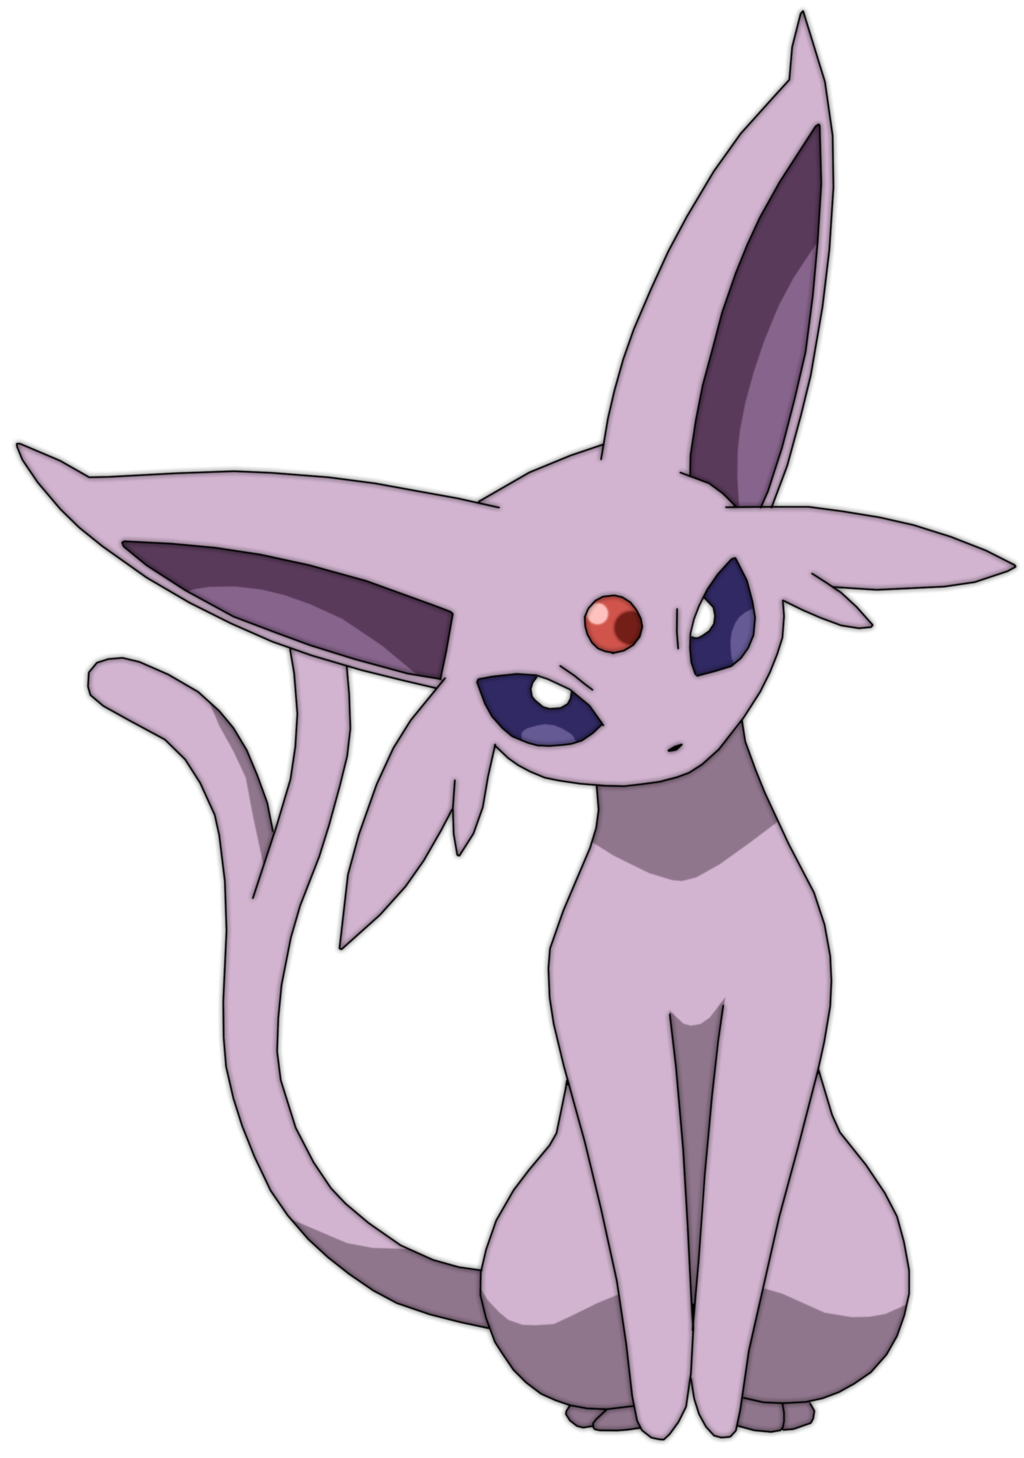 Image by uraharjourkdiayynrataichou d. Transparent espeon clipart freeuse download